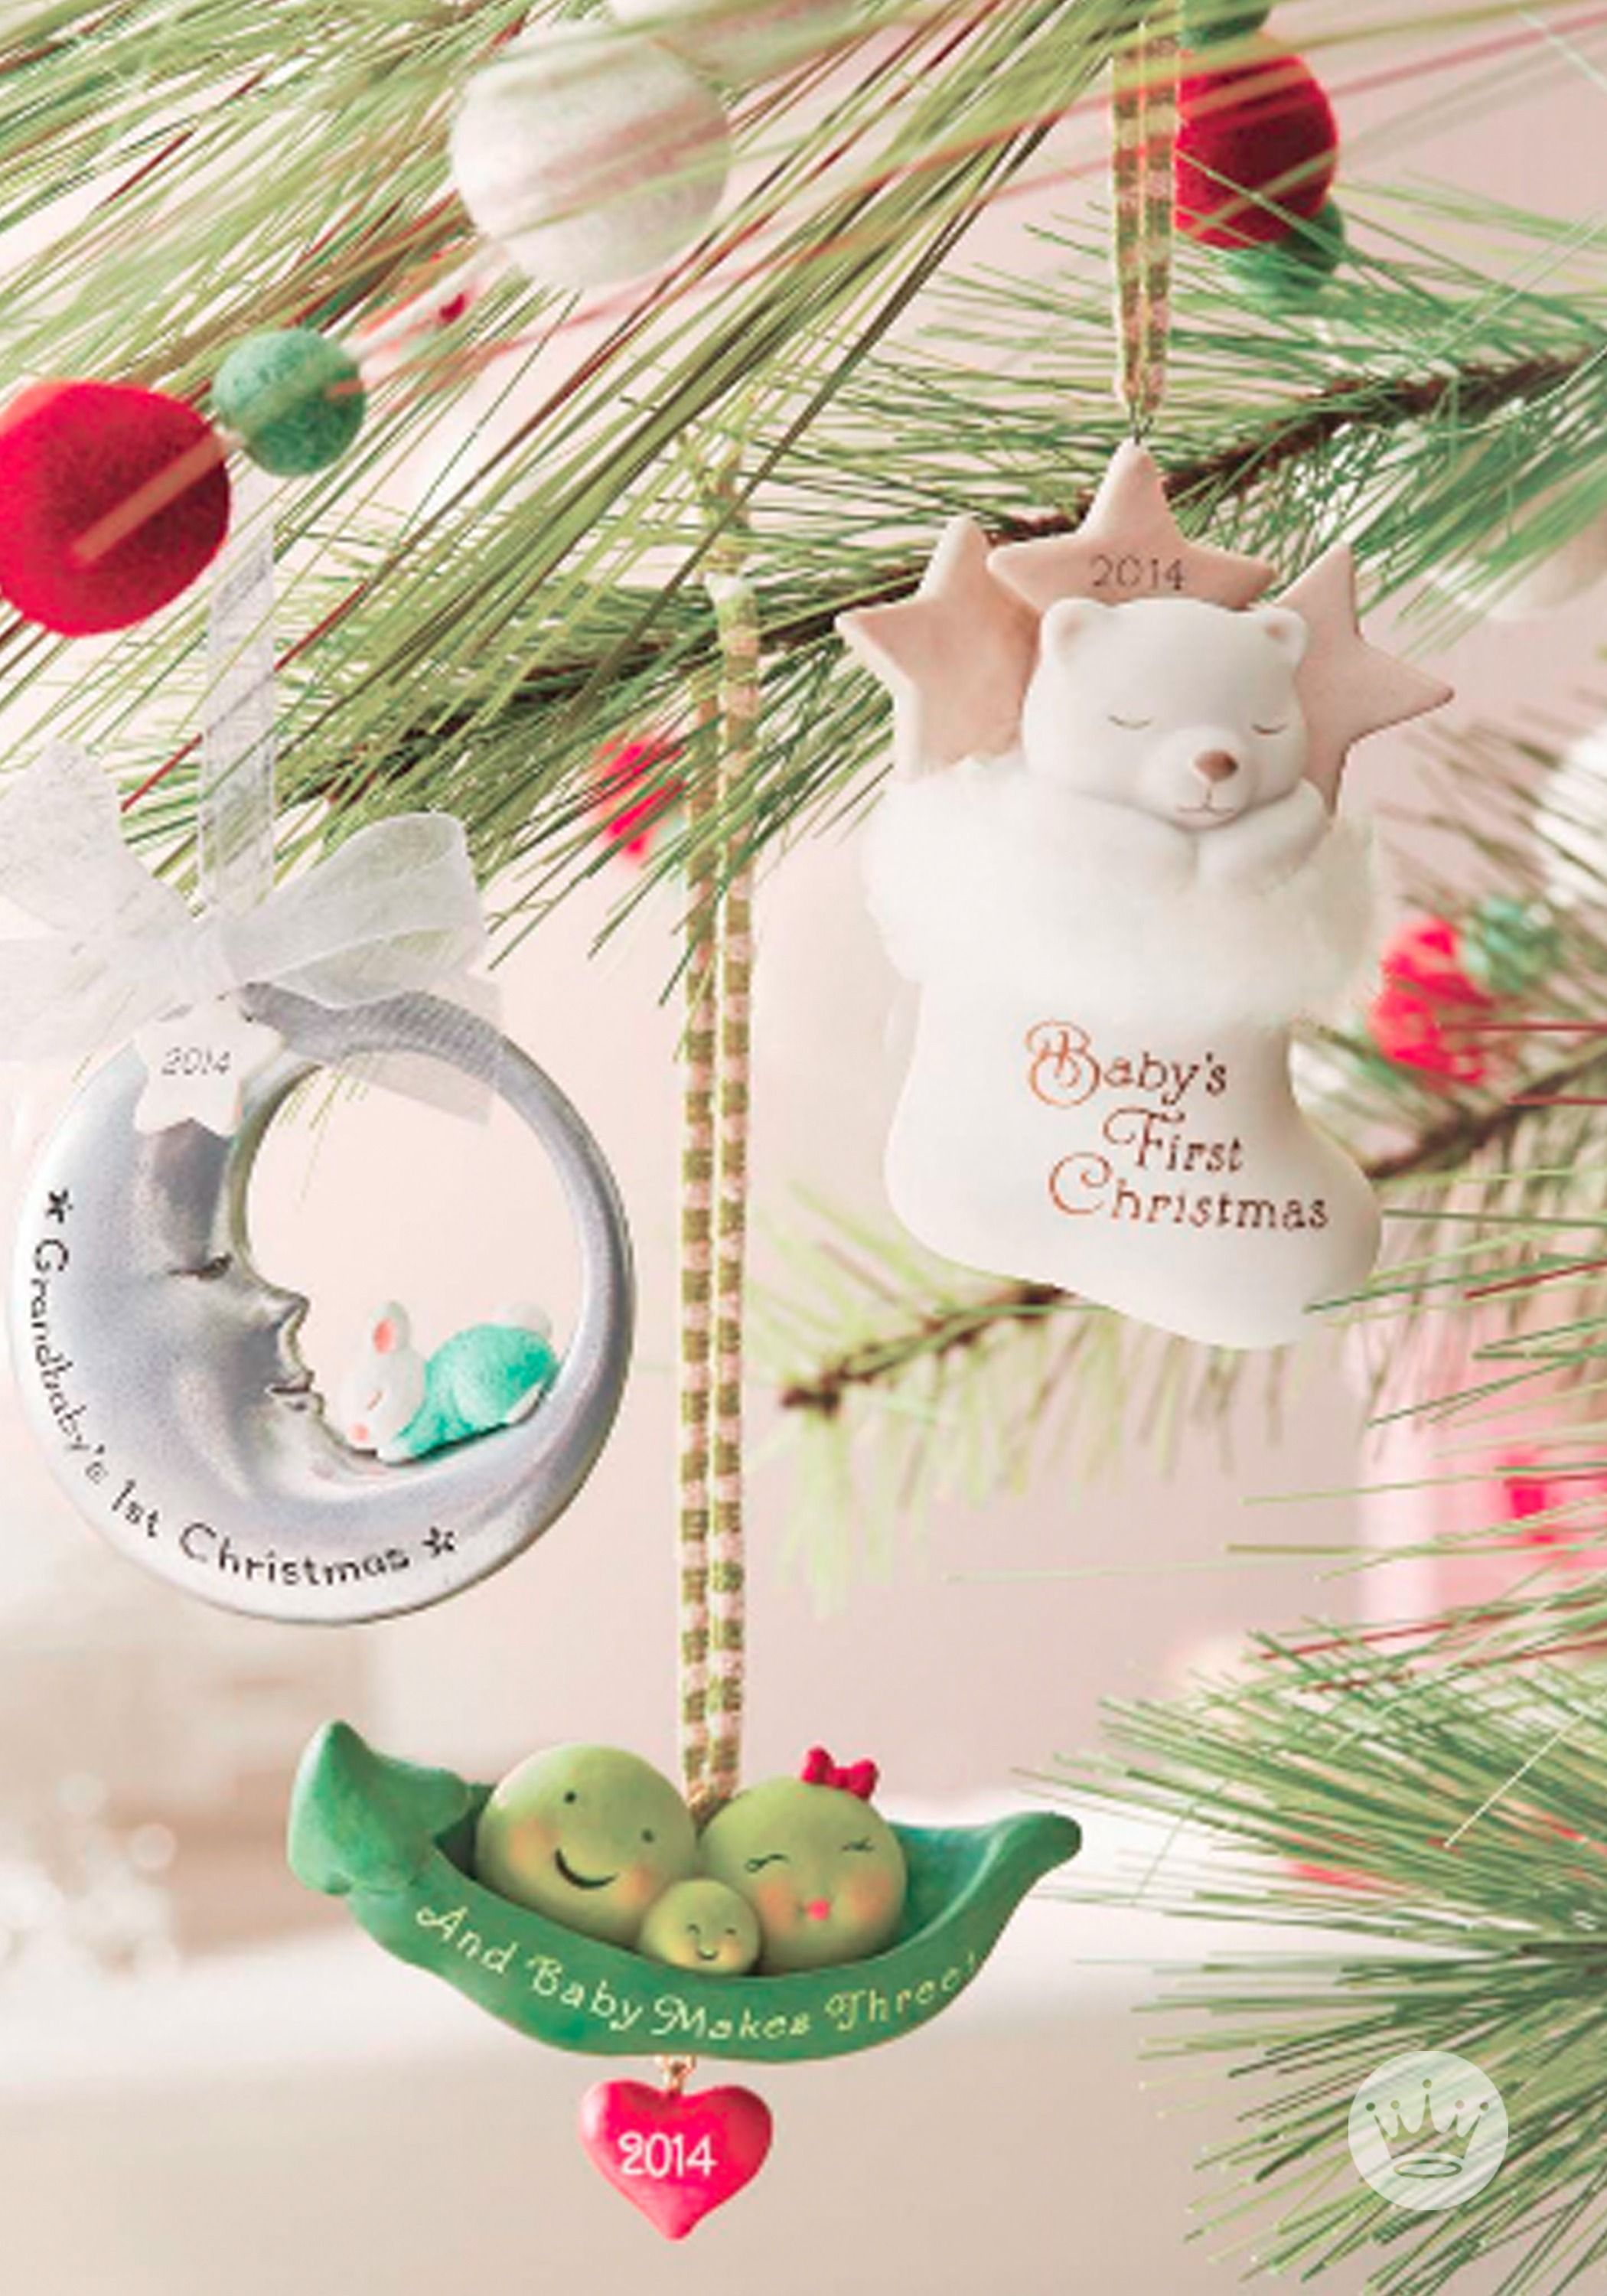 babys first christmas should be celebrated in style choose a keepsake ornament to remember all those adorable firsts first stocking first visit from - When Was The First Christmas Celebrated